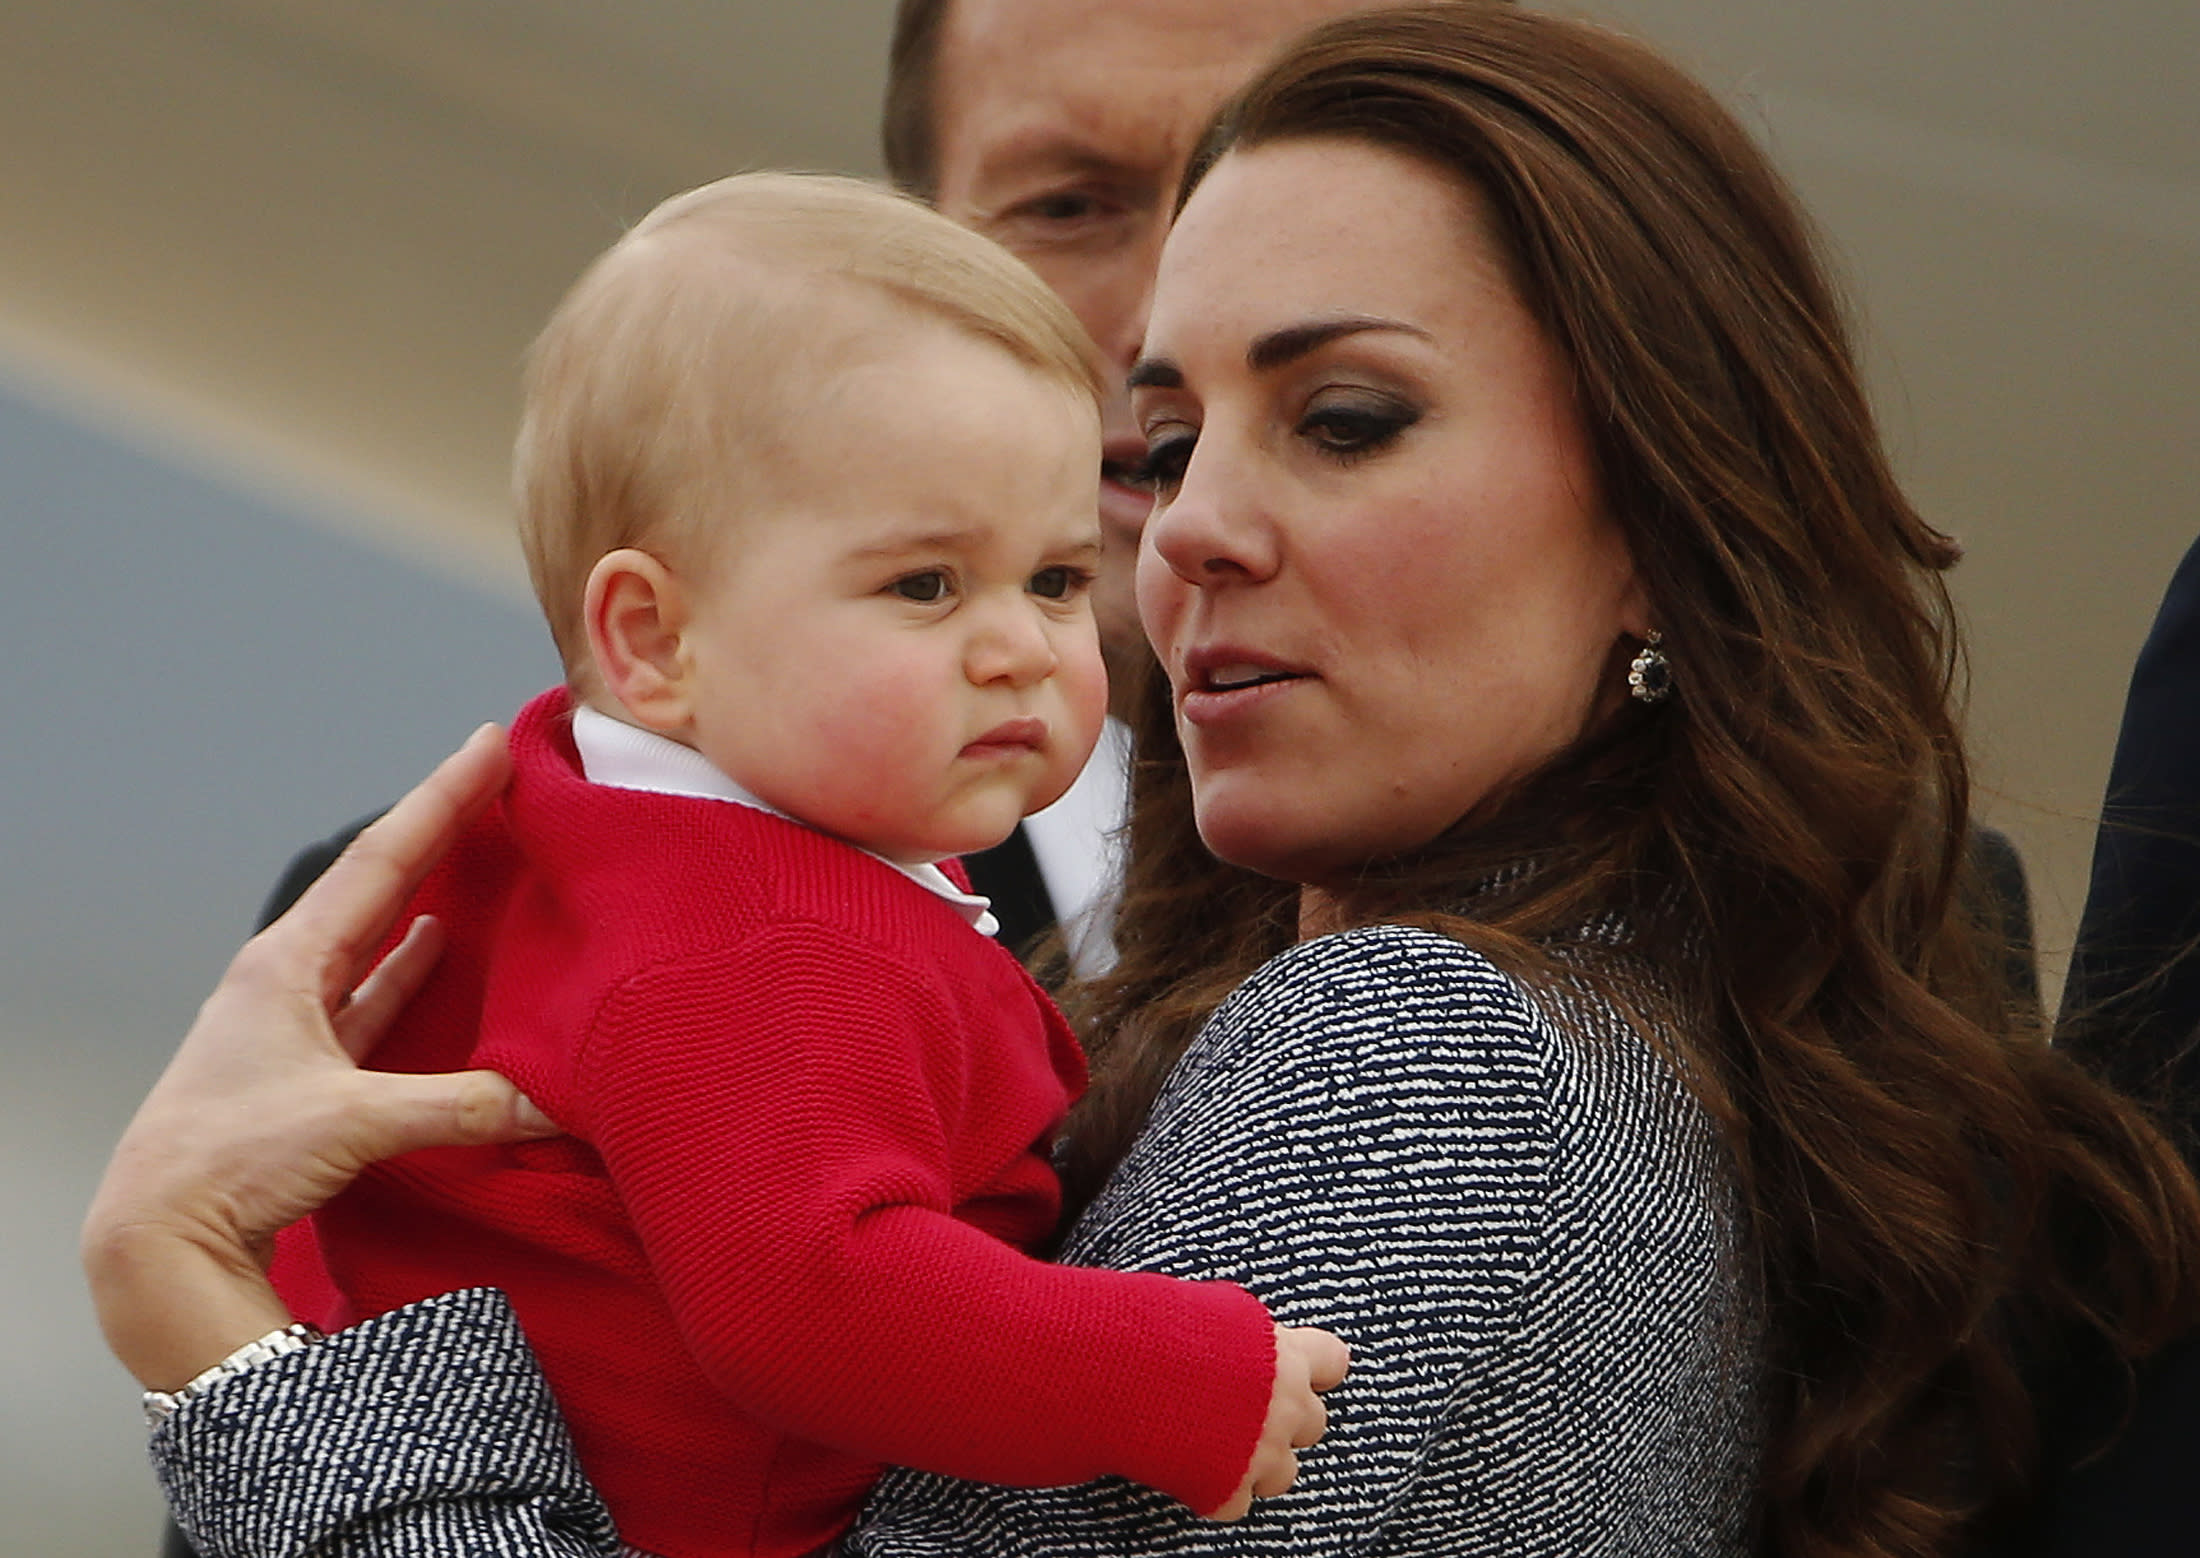 Britain's Catherine, the Duchess of Cambridge, holds her son Prince George as they prepare to board a plane with her husband Prince William (not pictured) to depart Canberra April 25, 2014. The Prince and his wife Kate are undertaking a 19-day official visit to New Zealand and Australia with their son Prince George. REUTERS/Phil Noble (AUSTRALIA - Tags: ROYALS ENTERTAINMENT POLITICS TPX IMAGES OF THE DAY)